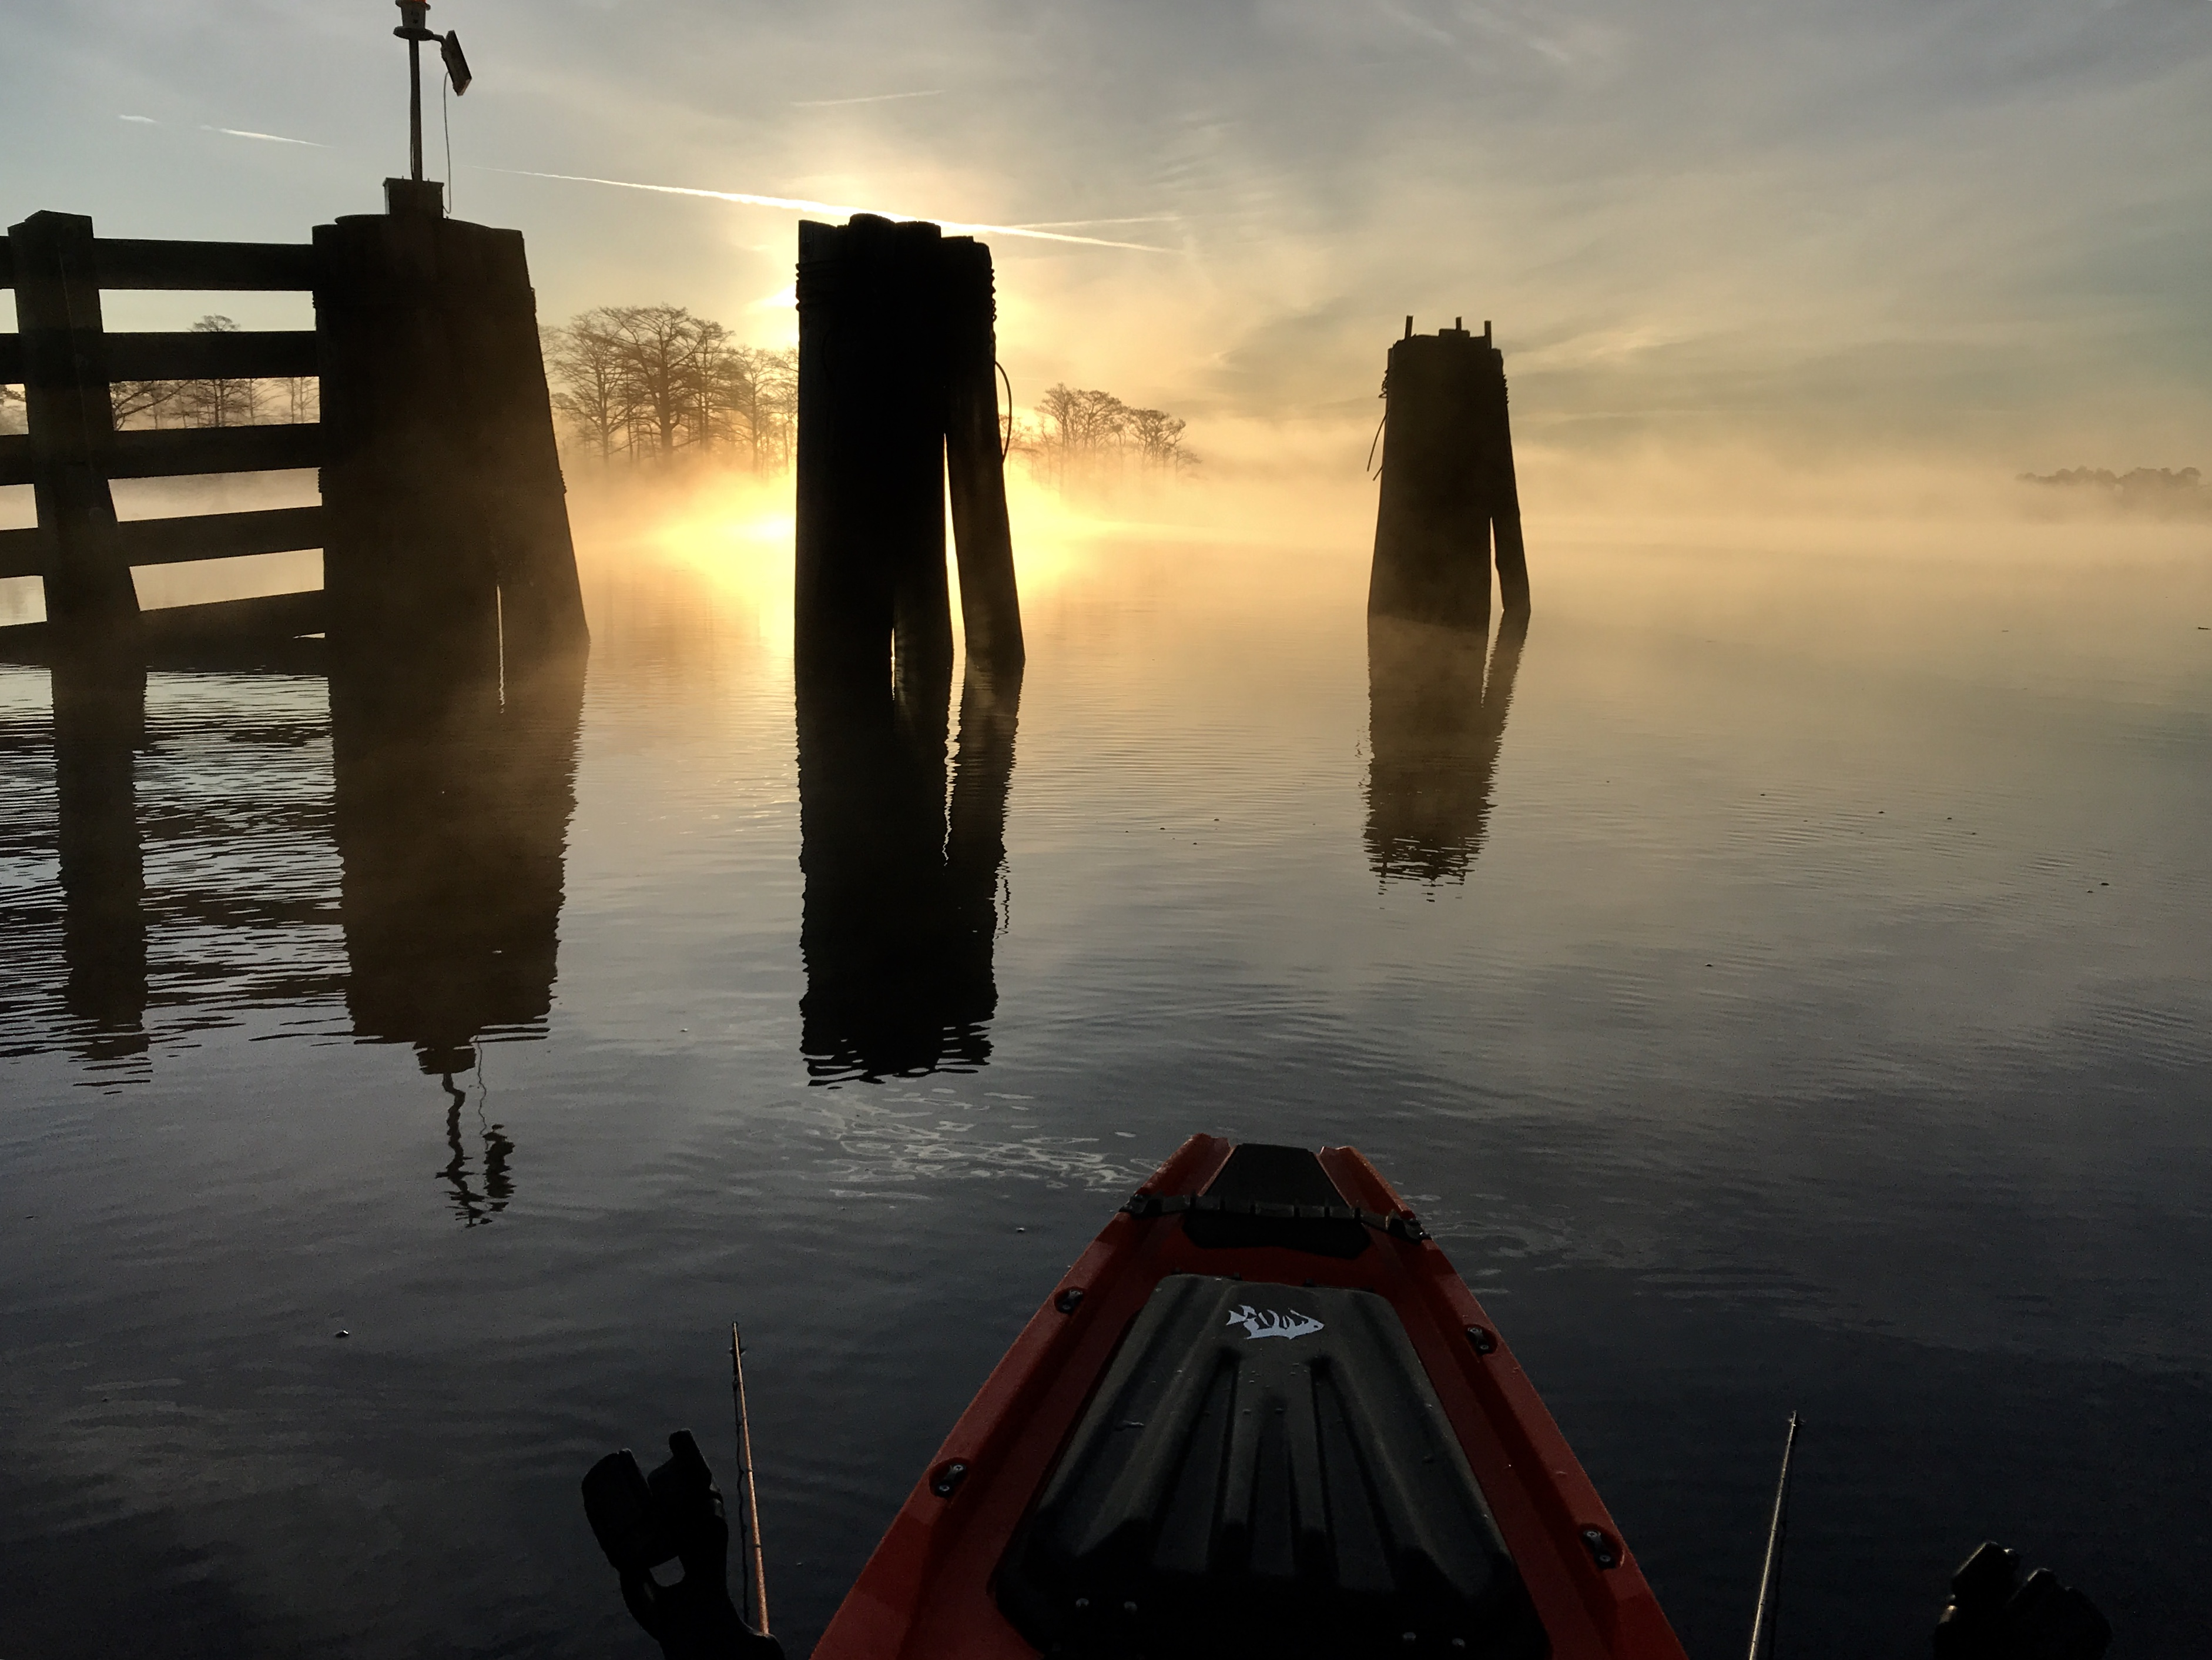 foggy waterscape with pilings at sunset